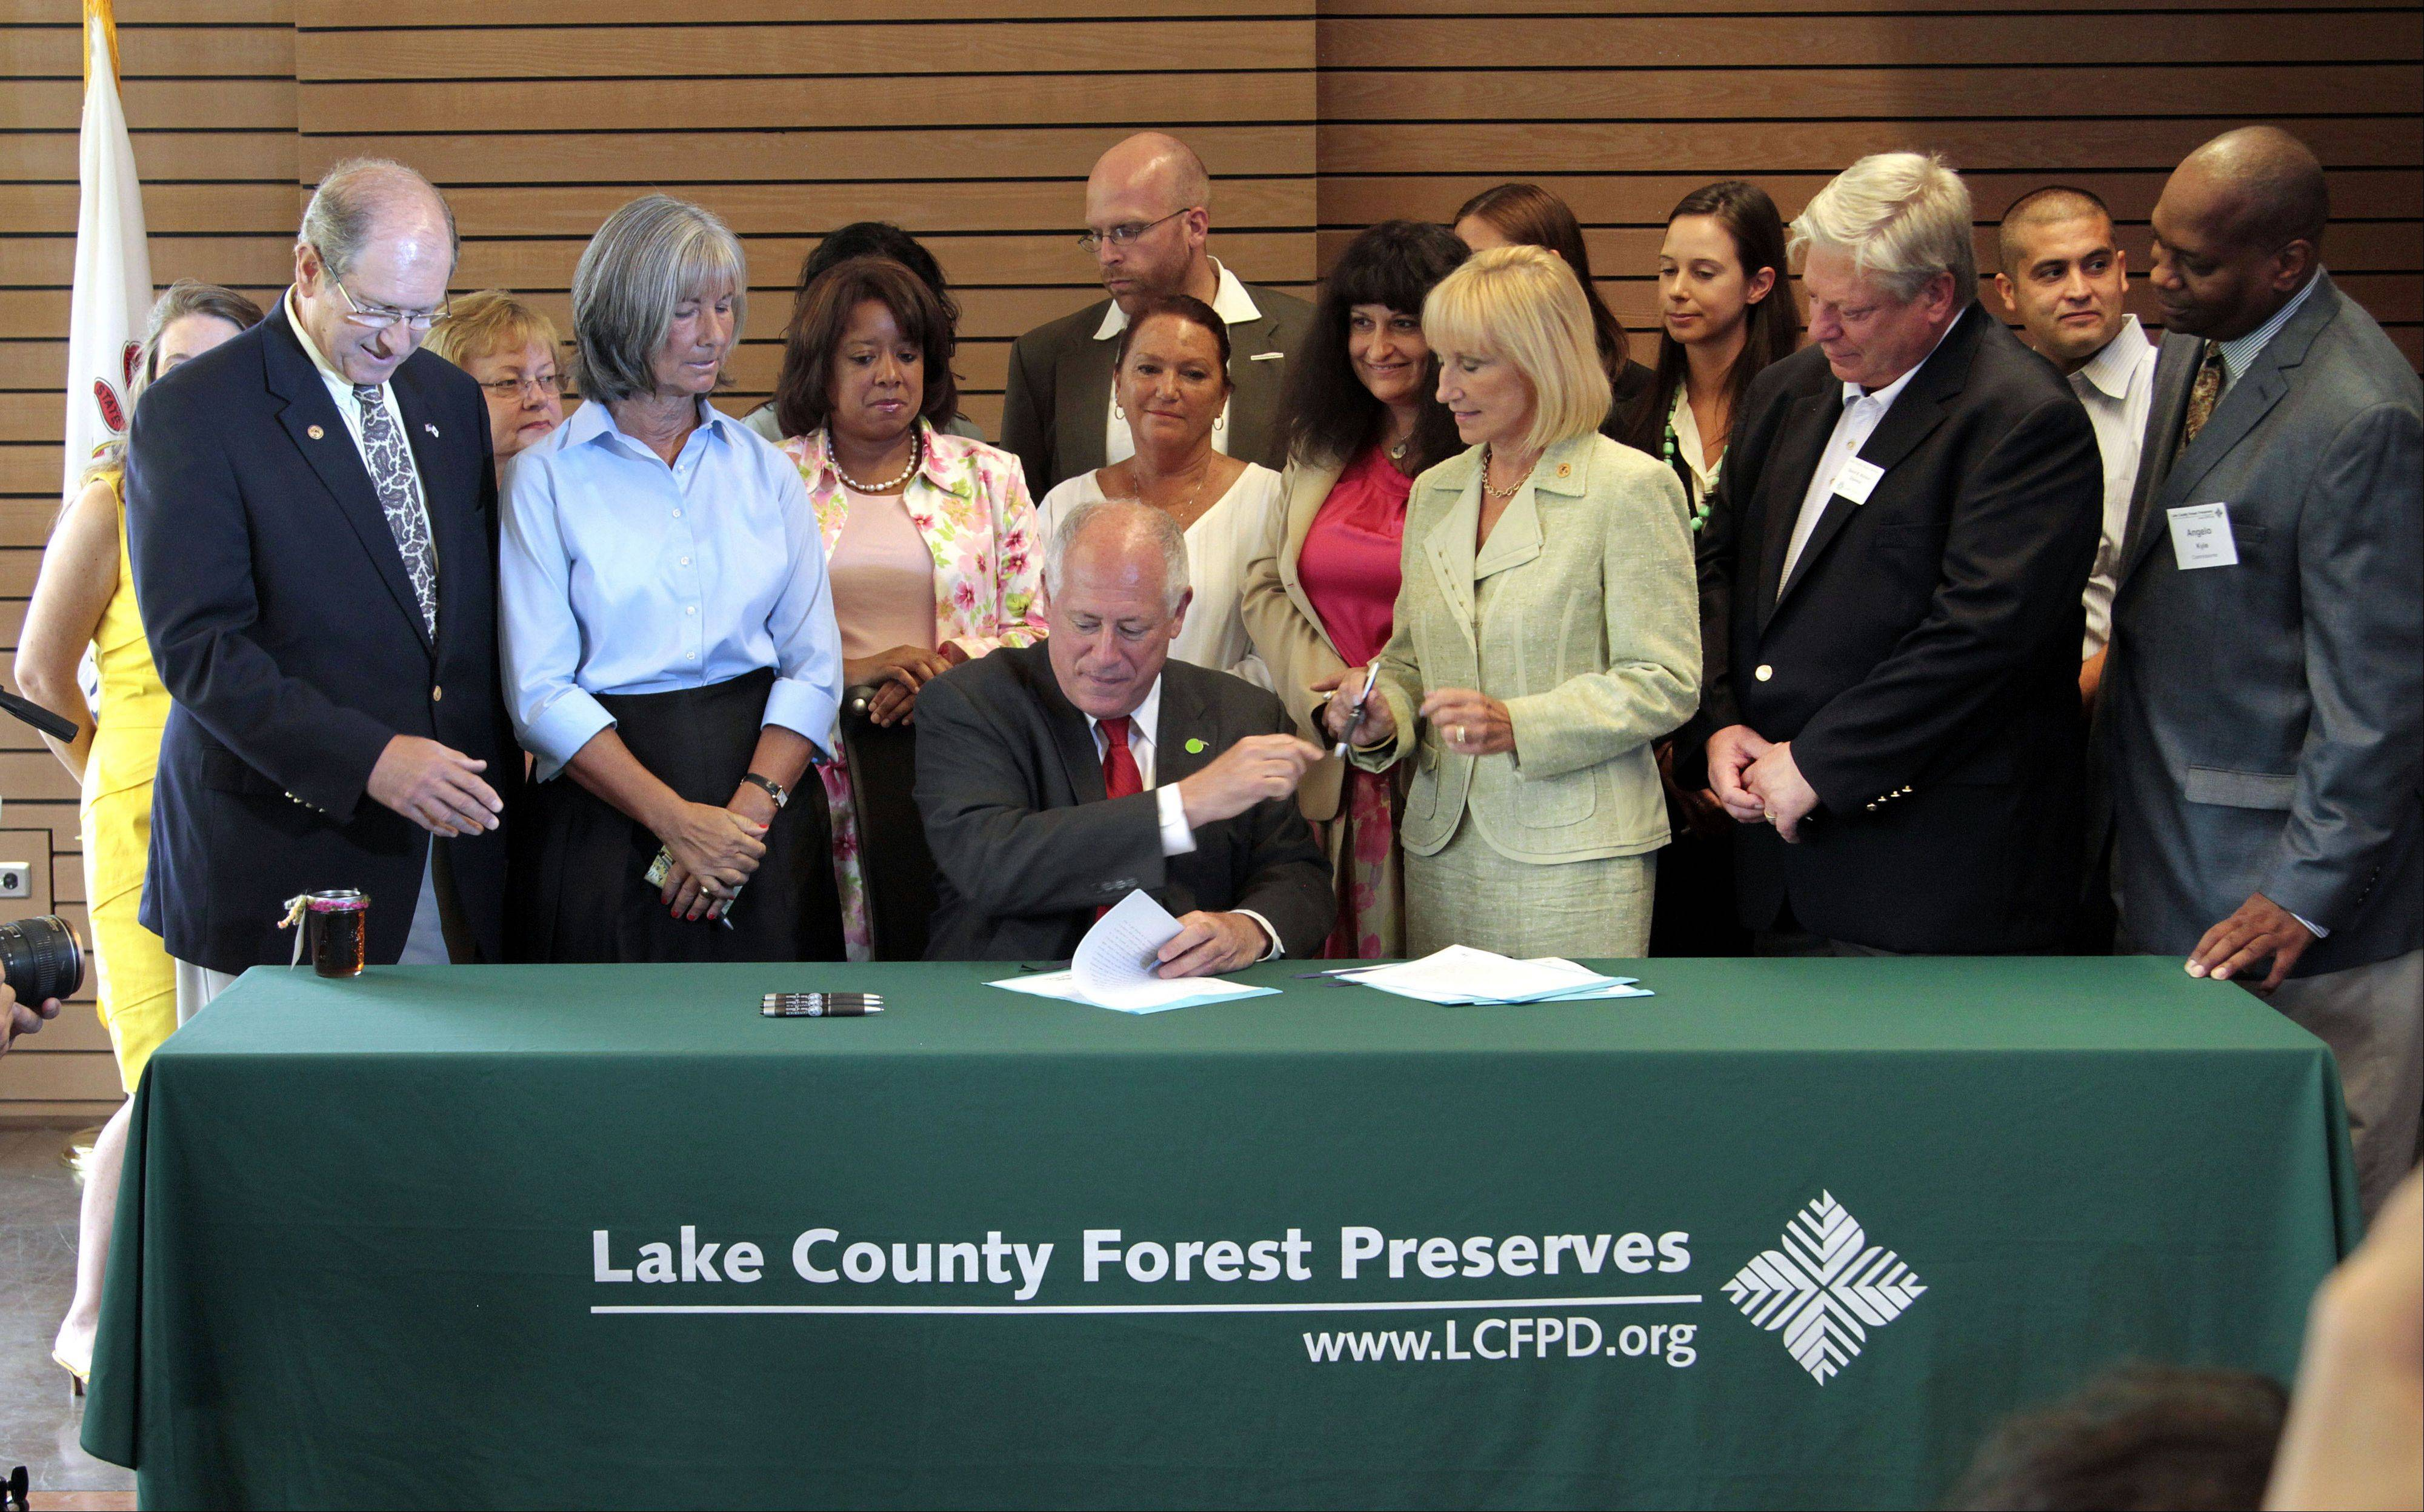 Gov. Pat Quinn signs one of several measures Thursday at the Ryerson Woods Welcome Center in Deerfield involving conservation and the environment.